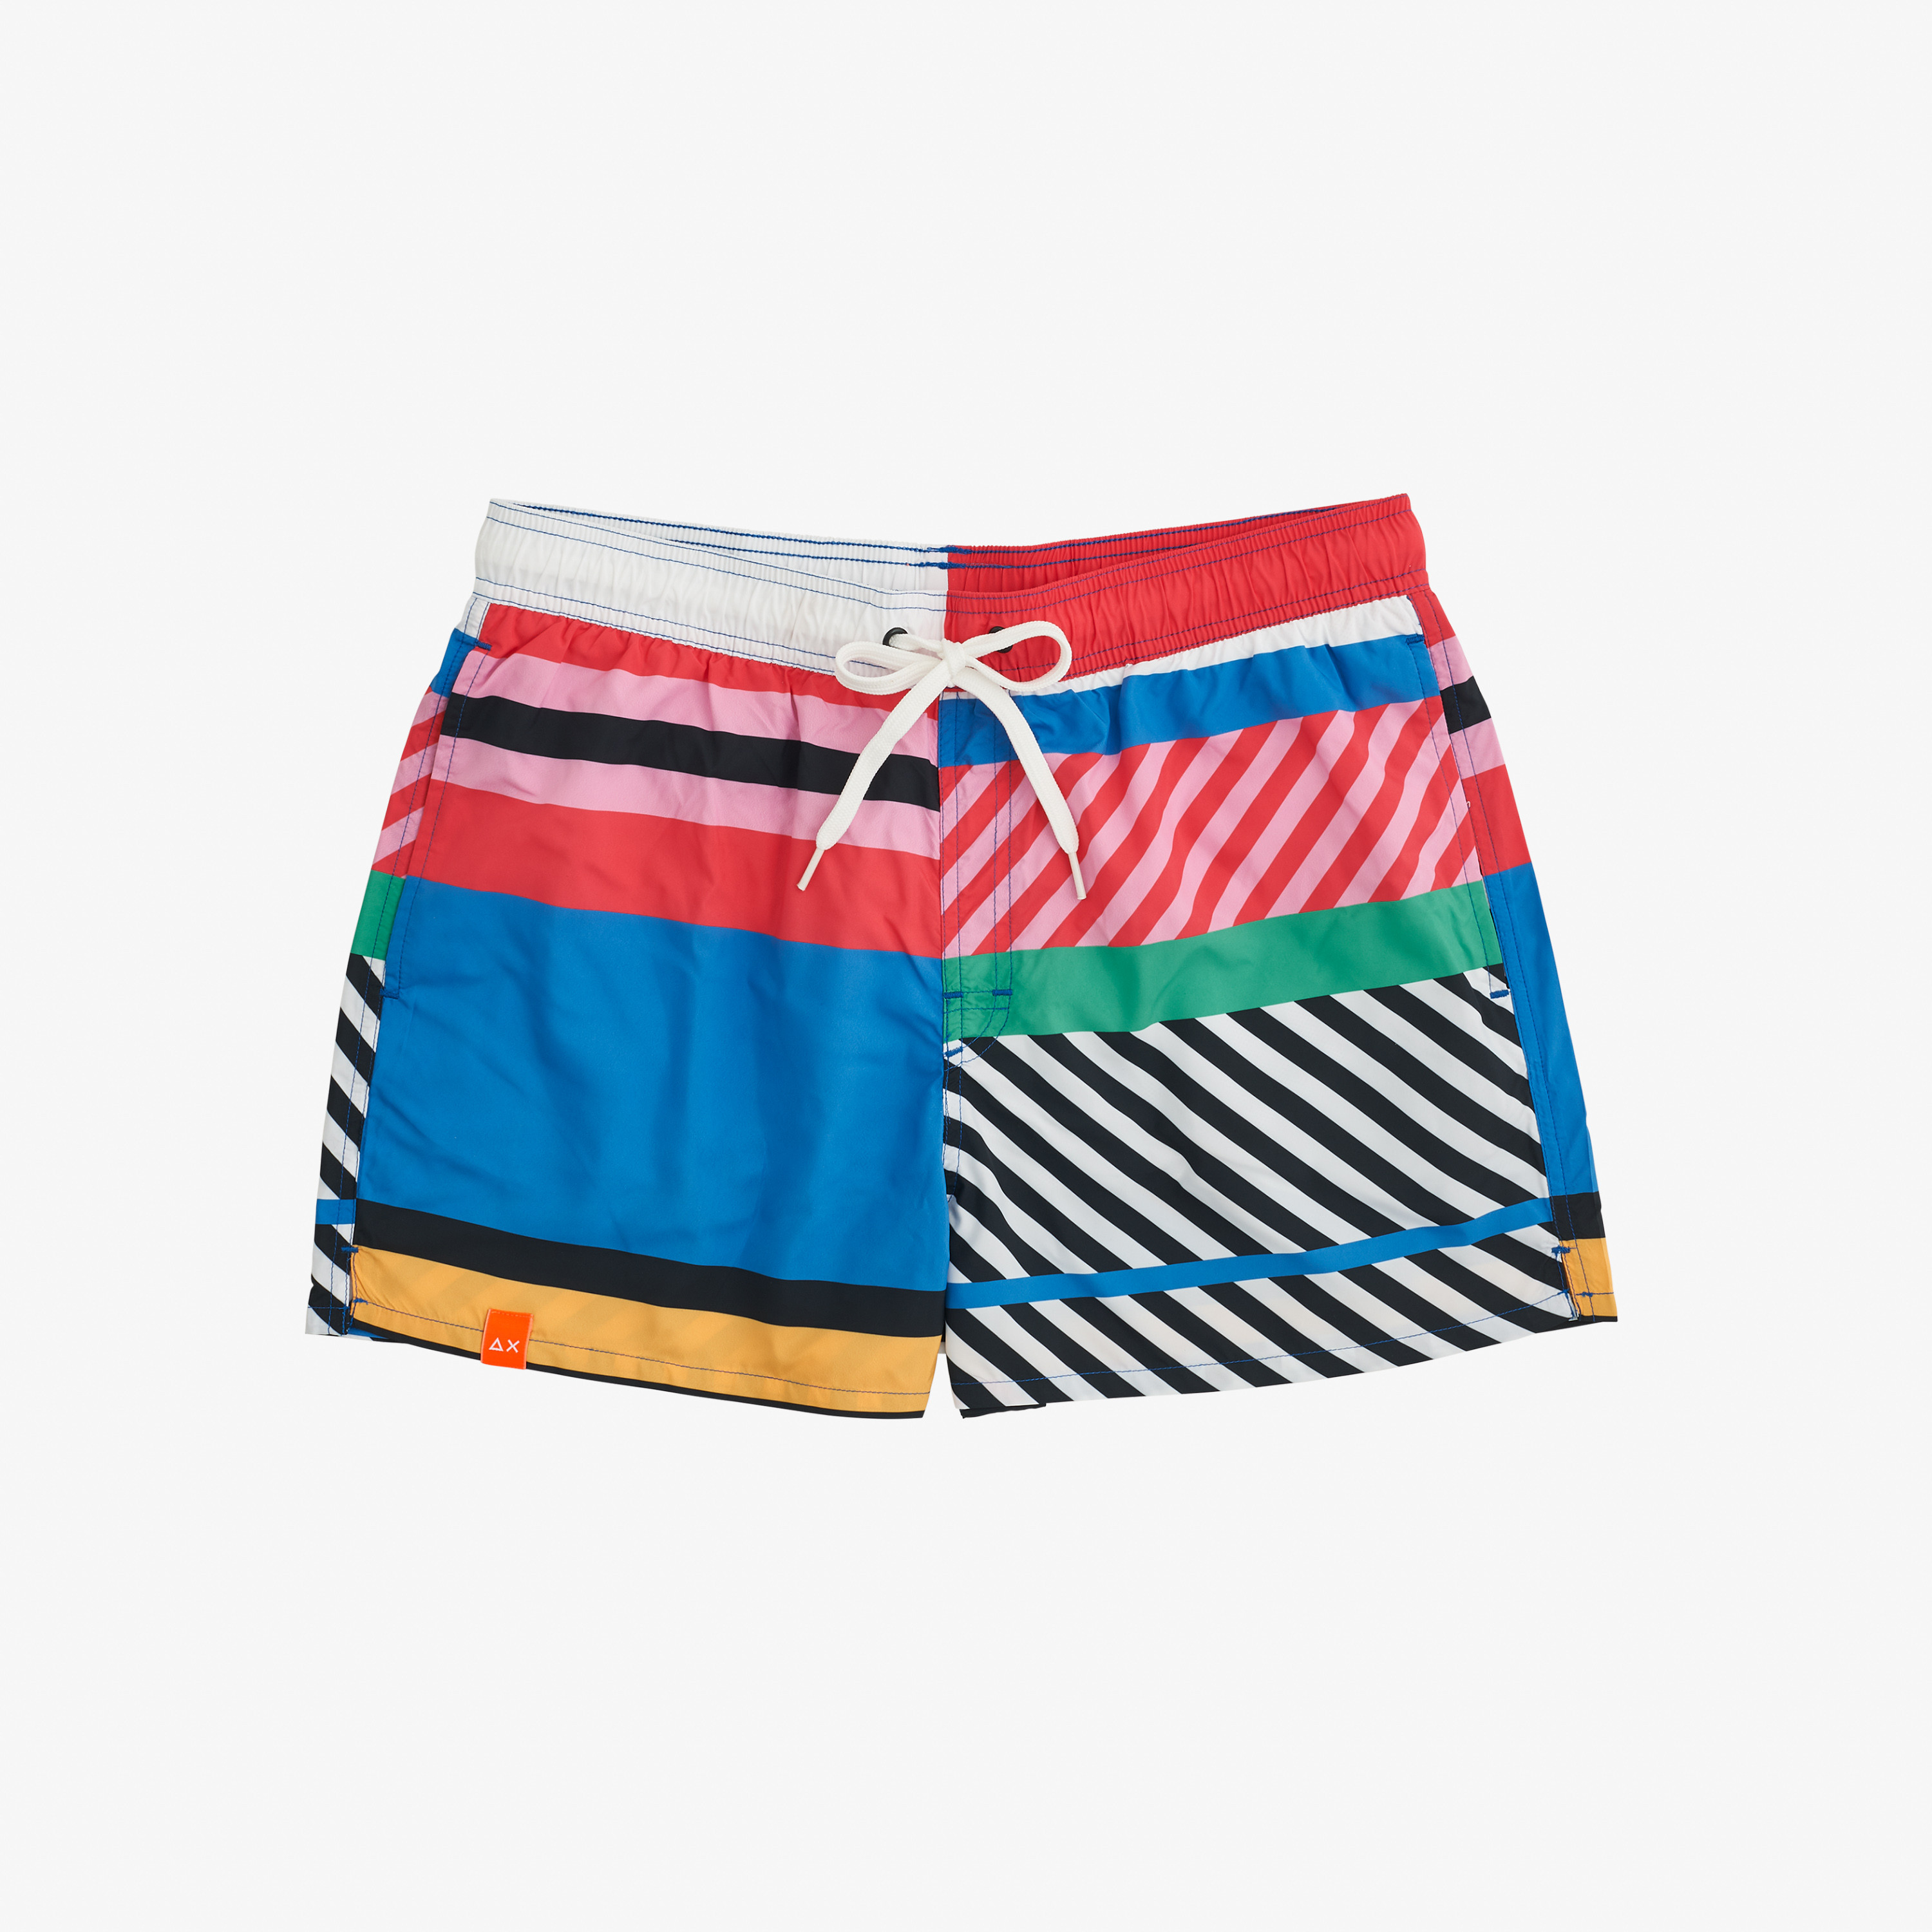 SWIM PANT GEOMETRIC CORAL/BLUE